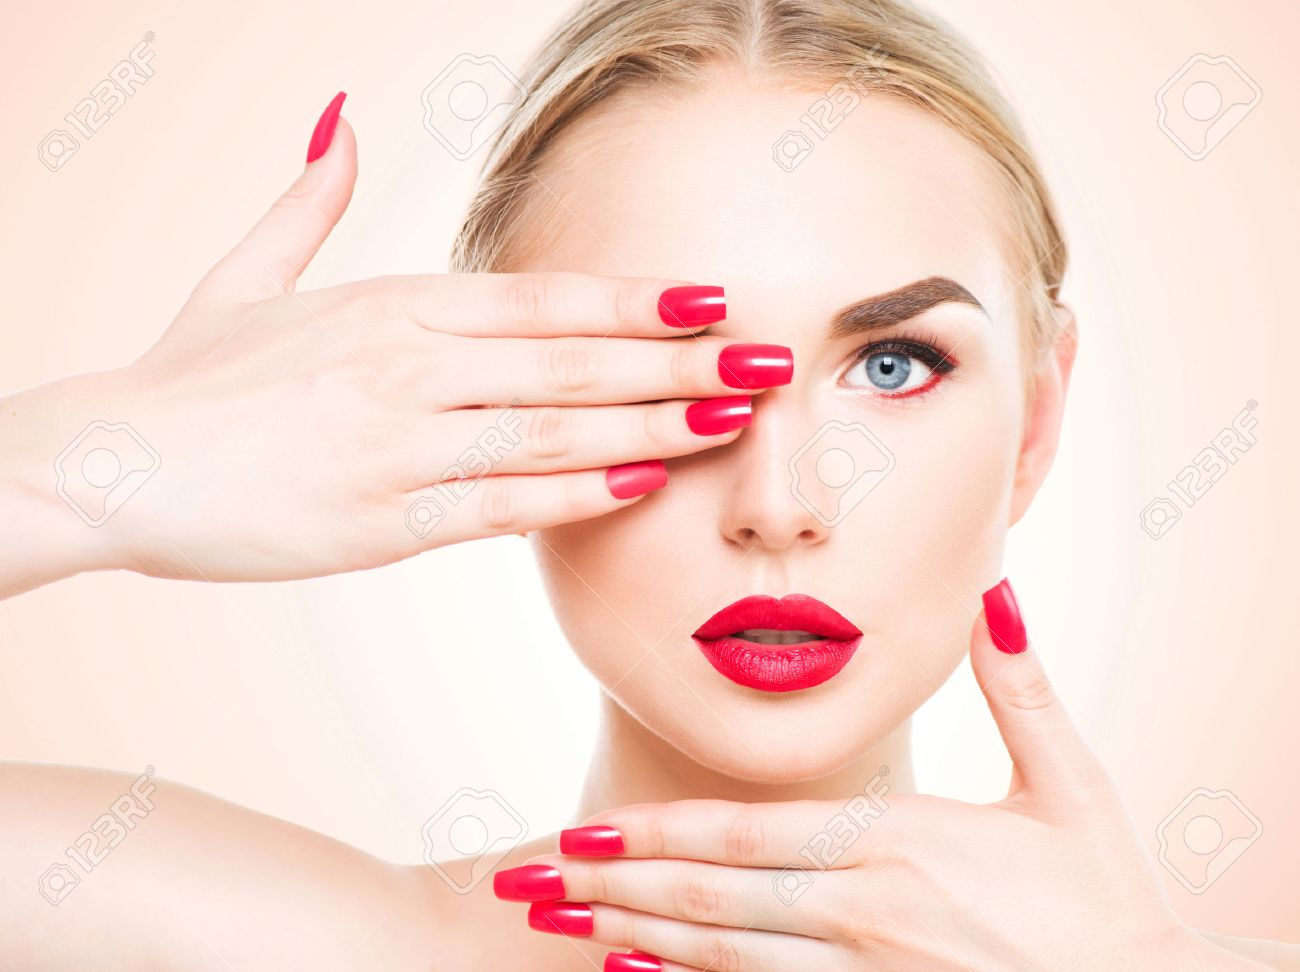 Beautiful woman with blond hair. Fashion model with red lipstick and red nails. Portrait